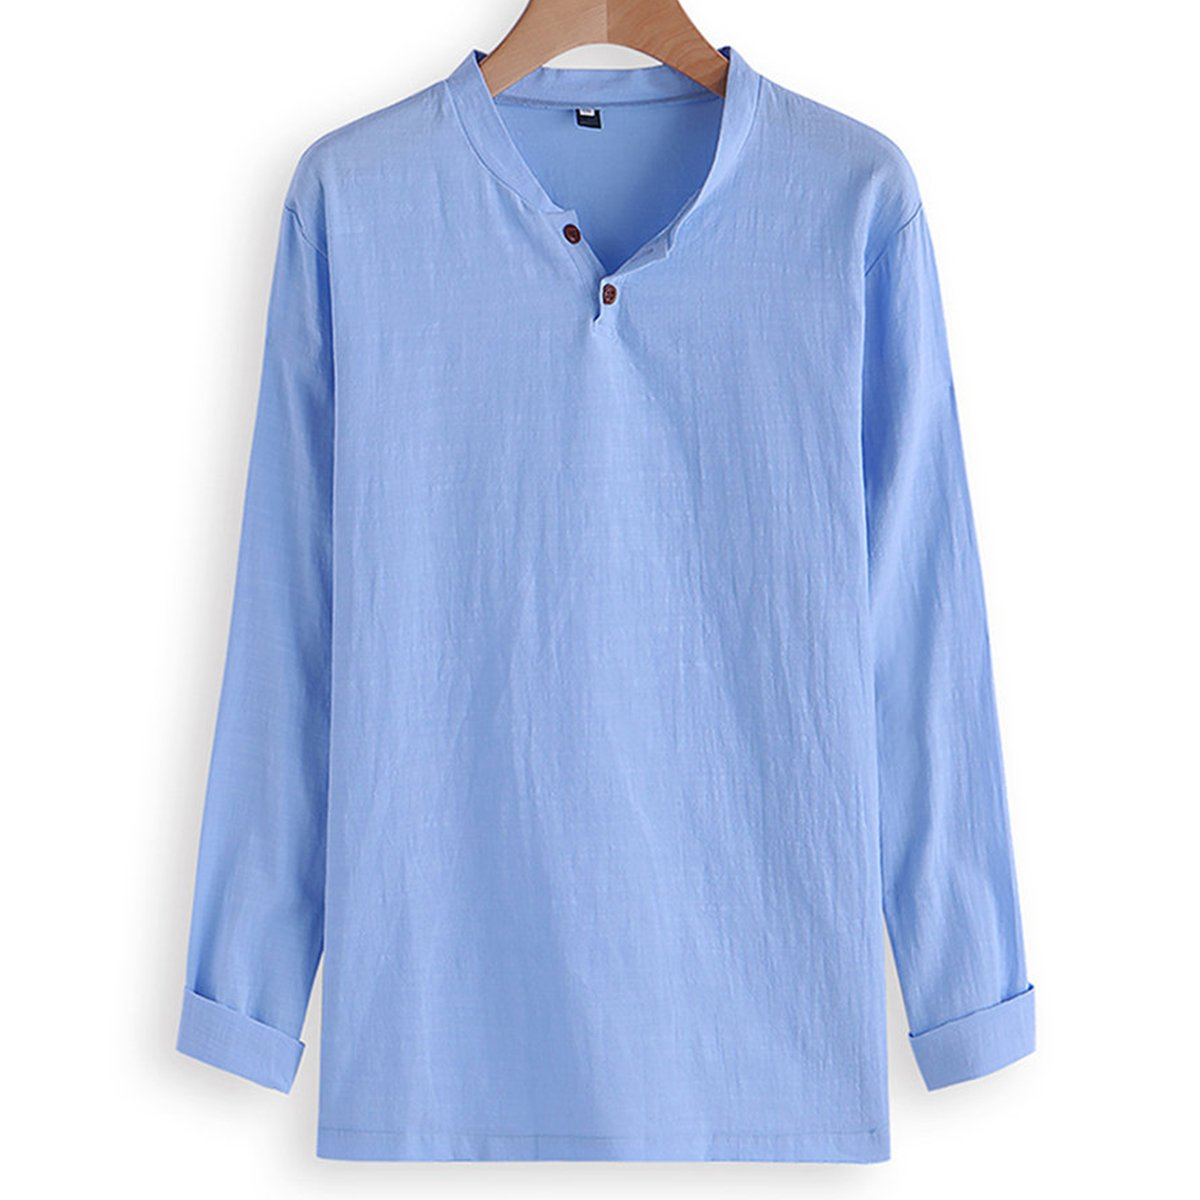 689085b5 Mens Casual Linen V-Neck Chinese Collar Long Sleeve T-Shirt Fashion Solid  Color Tops